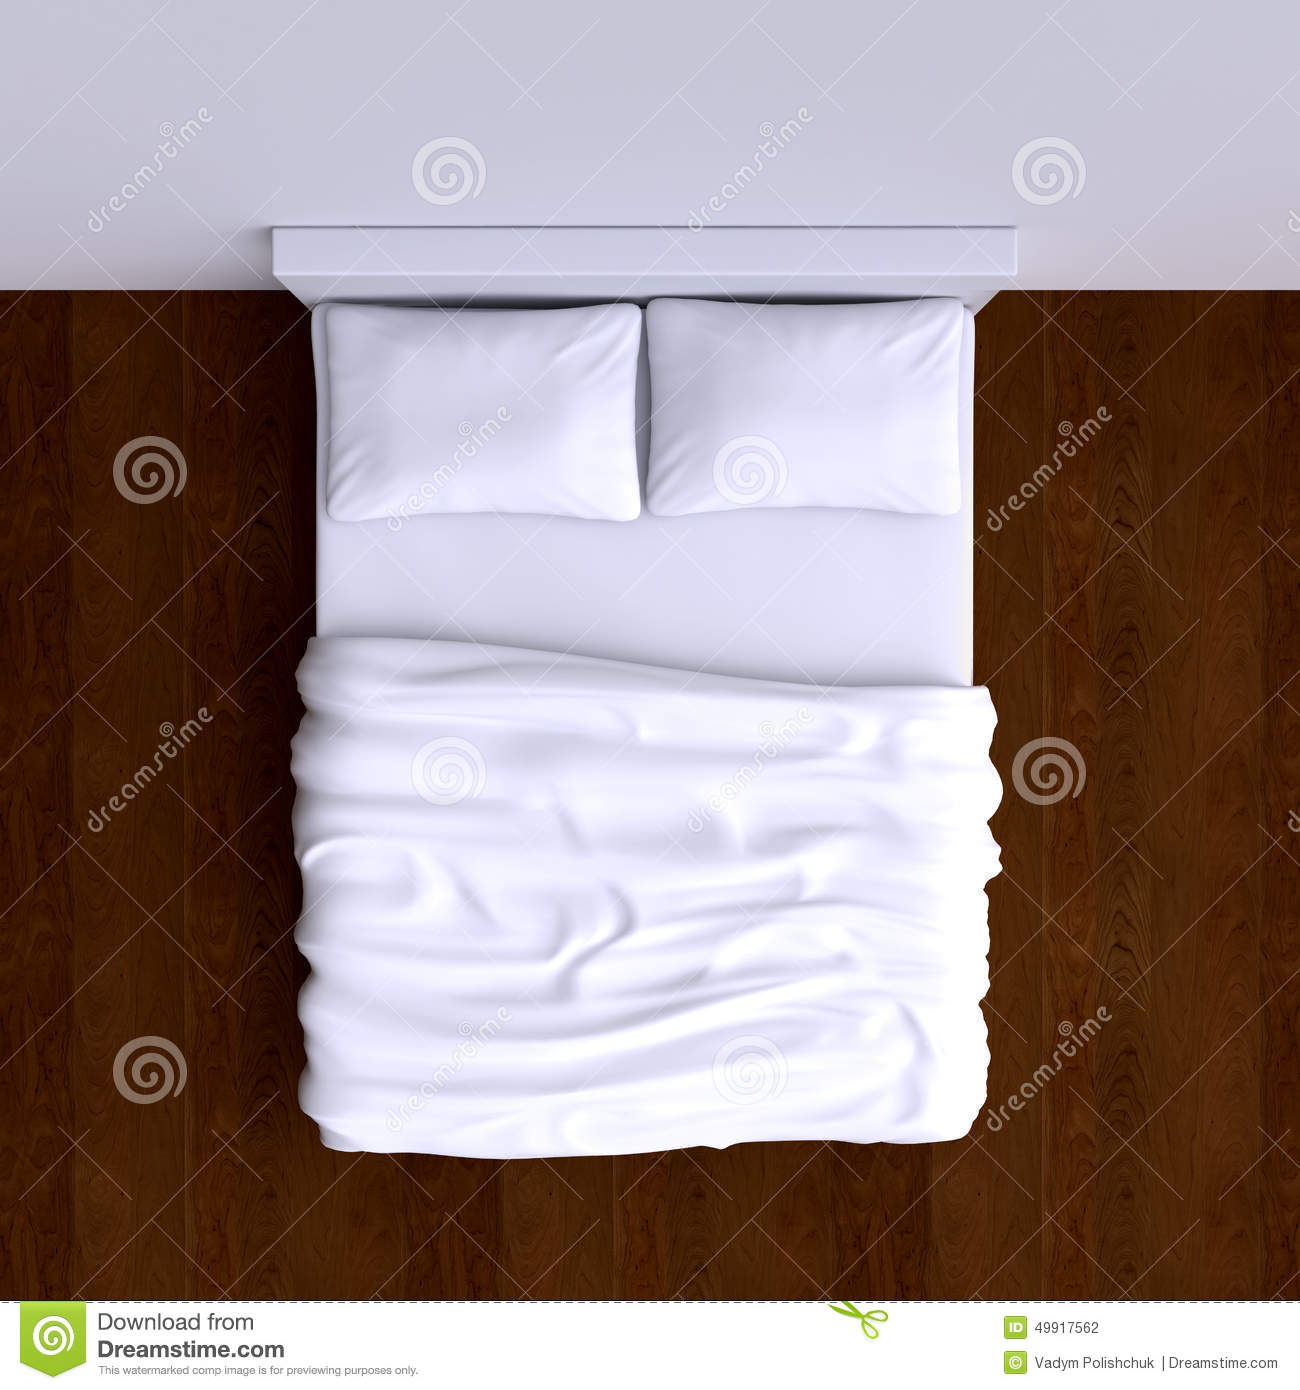 White bed top view - Bed With Pillows And A Blanket In The Corner Room 3d Illustration Stock Photography